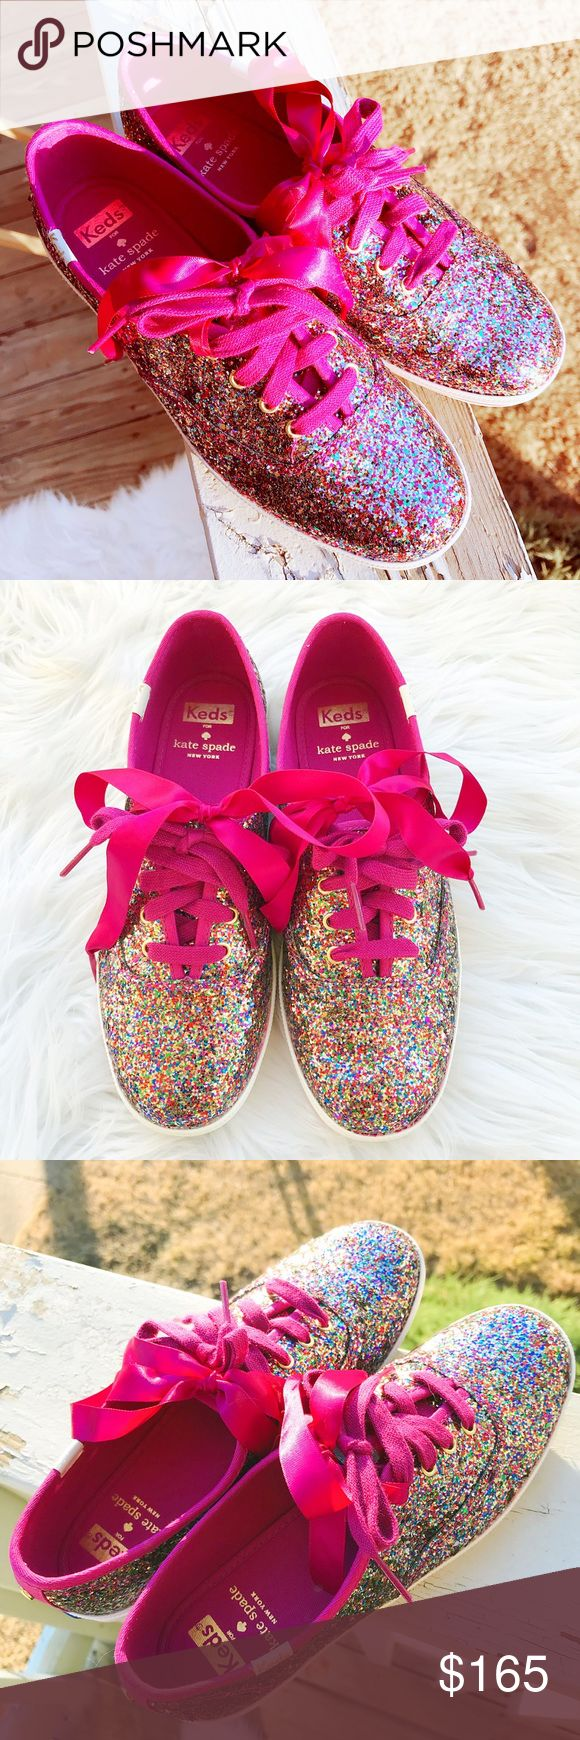 🎀Kate Spade x Keds Sneakers🎀 💟Beautiful sparkly multi color glitter sneakers; 🎀Brand new, only been tried on; In perfect condition, no damages; ✔️All items 100% Authentic; ⛔️NO TRADES; 💰REASONABLE offers will only be considered through the offer button. NO lowballs, please; 🌷Smoke free, pet free home; 🚫Promotion of other closets in my listings is not appreciated and will be blocked; 💸BUNDLE and save!!   💋Happy Poshing💋 kate spade Shoes